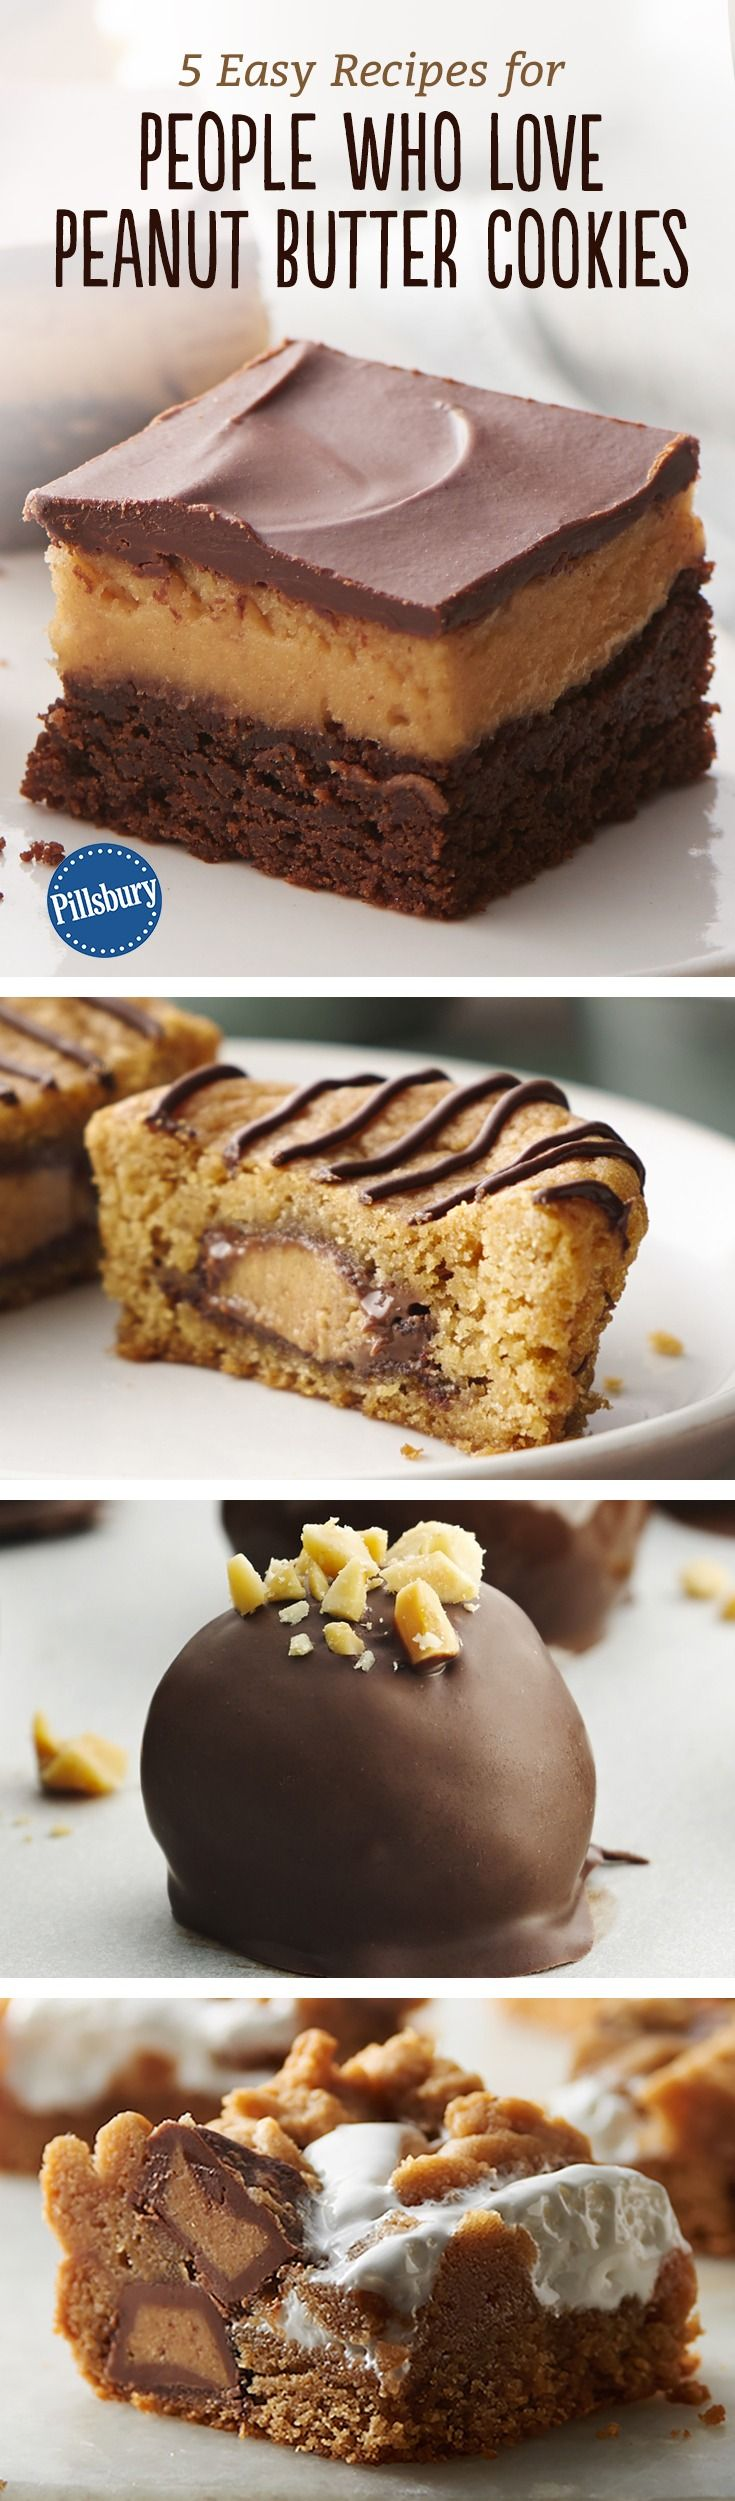 5 Easy Recipes for People Who Love Peanut Butter - These recipes take peanut butter from tasty to tantalizing with just a few pantry staples.